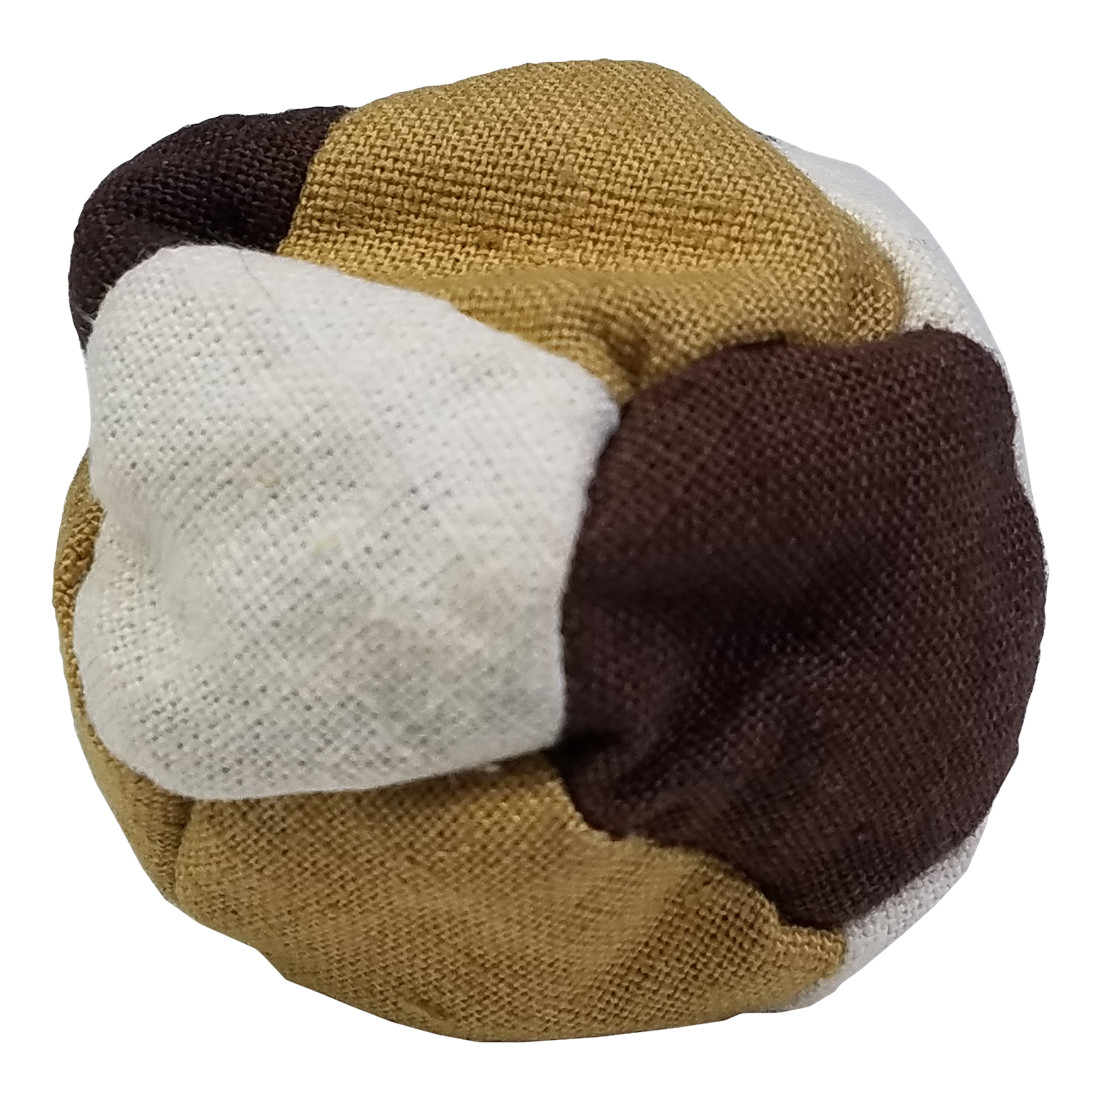 12 Panel Hemp Patchwork Hacky Sack Assorted